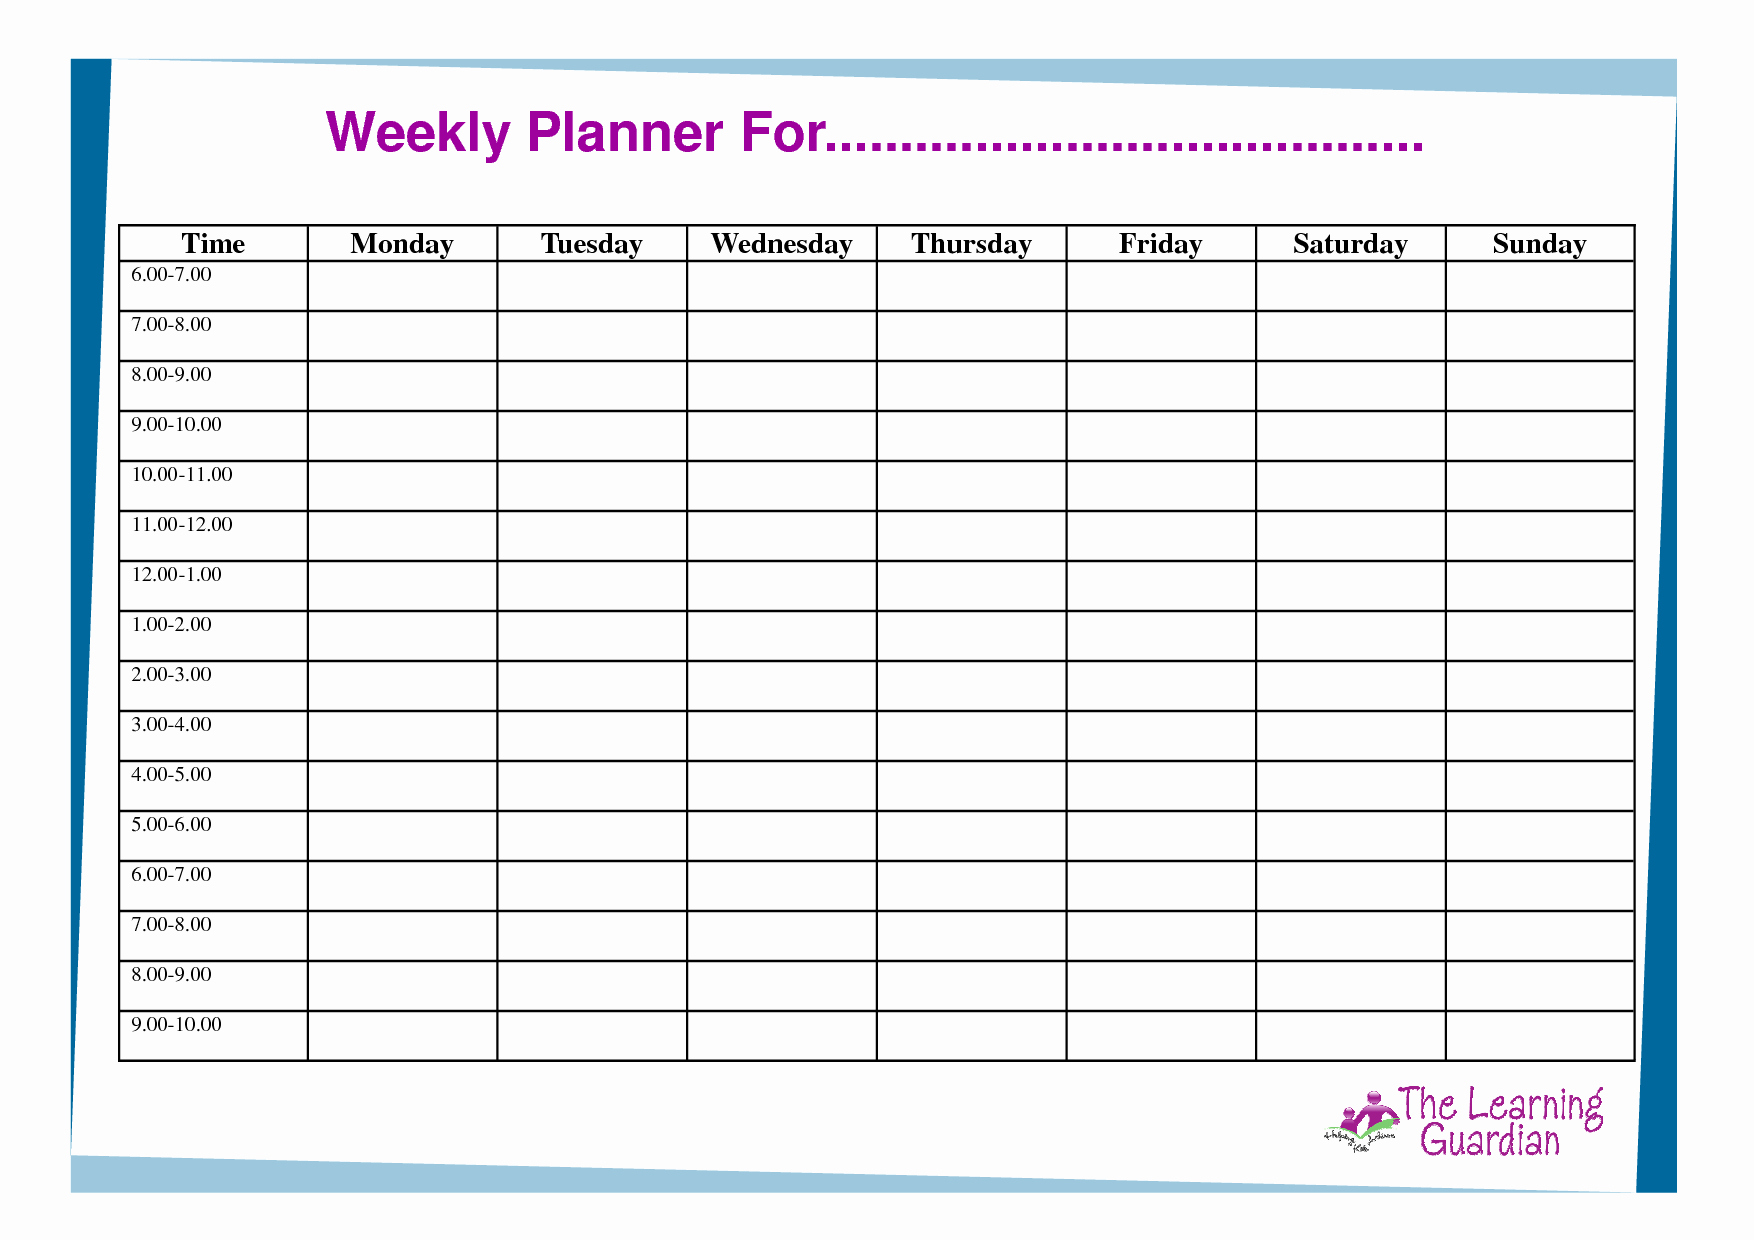 Student Weekly Schedule Template Lovely Schedule Printable Gallery Category Page 1